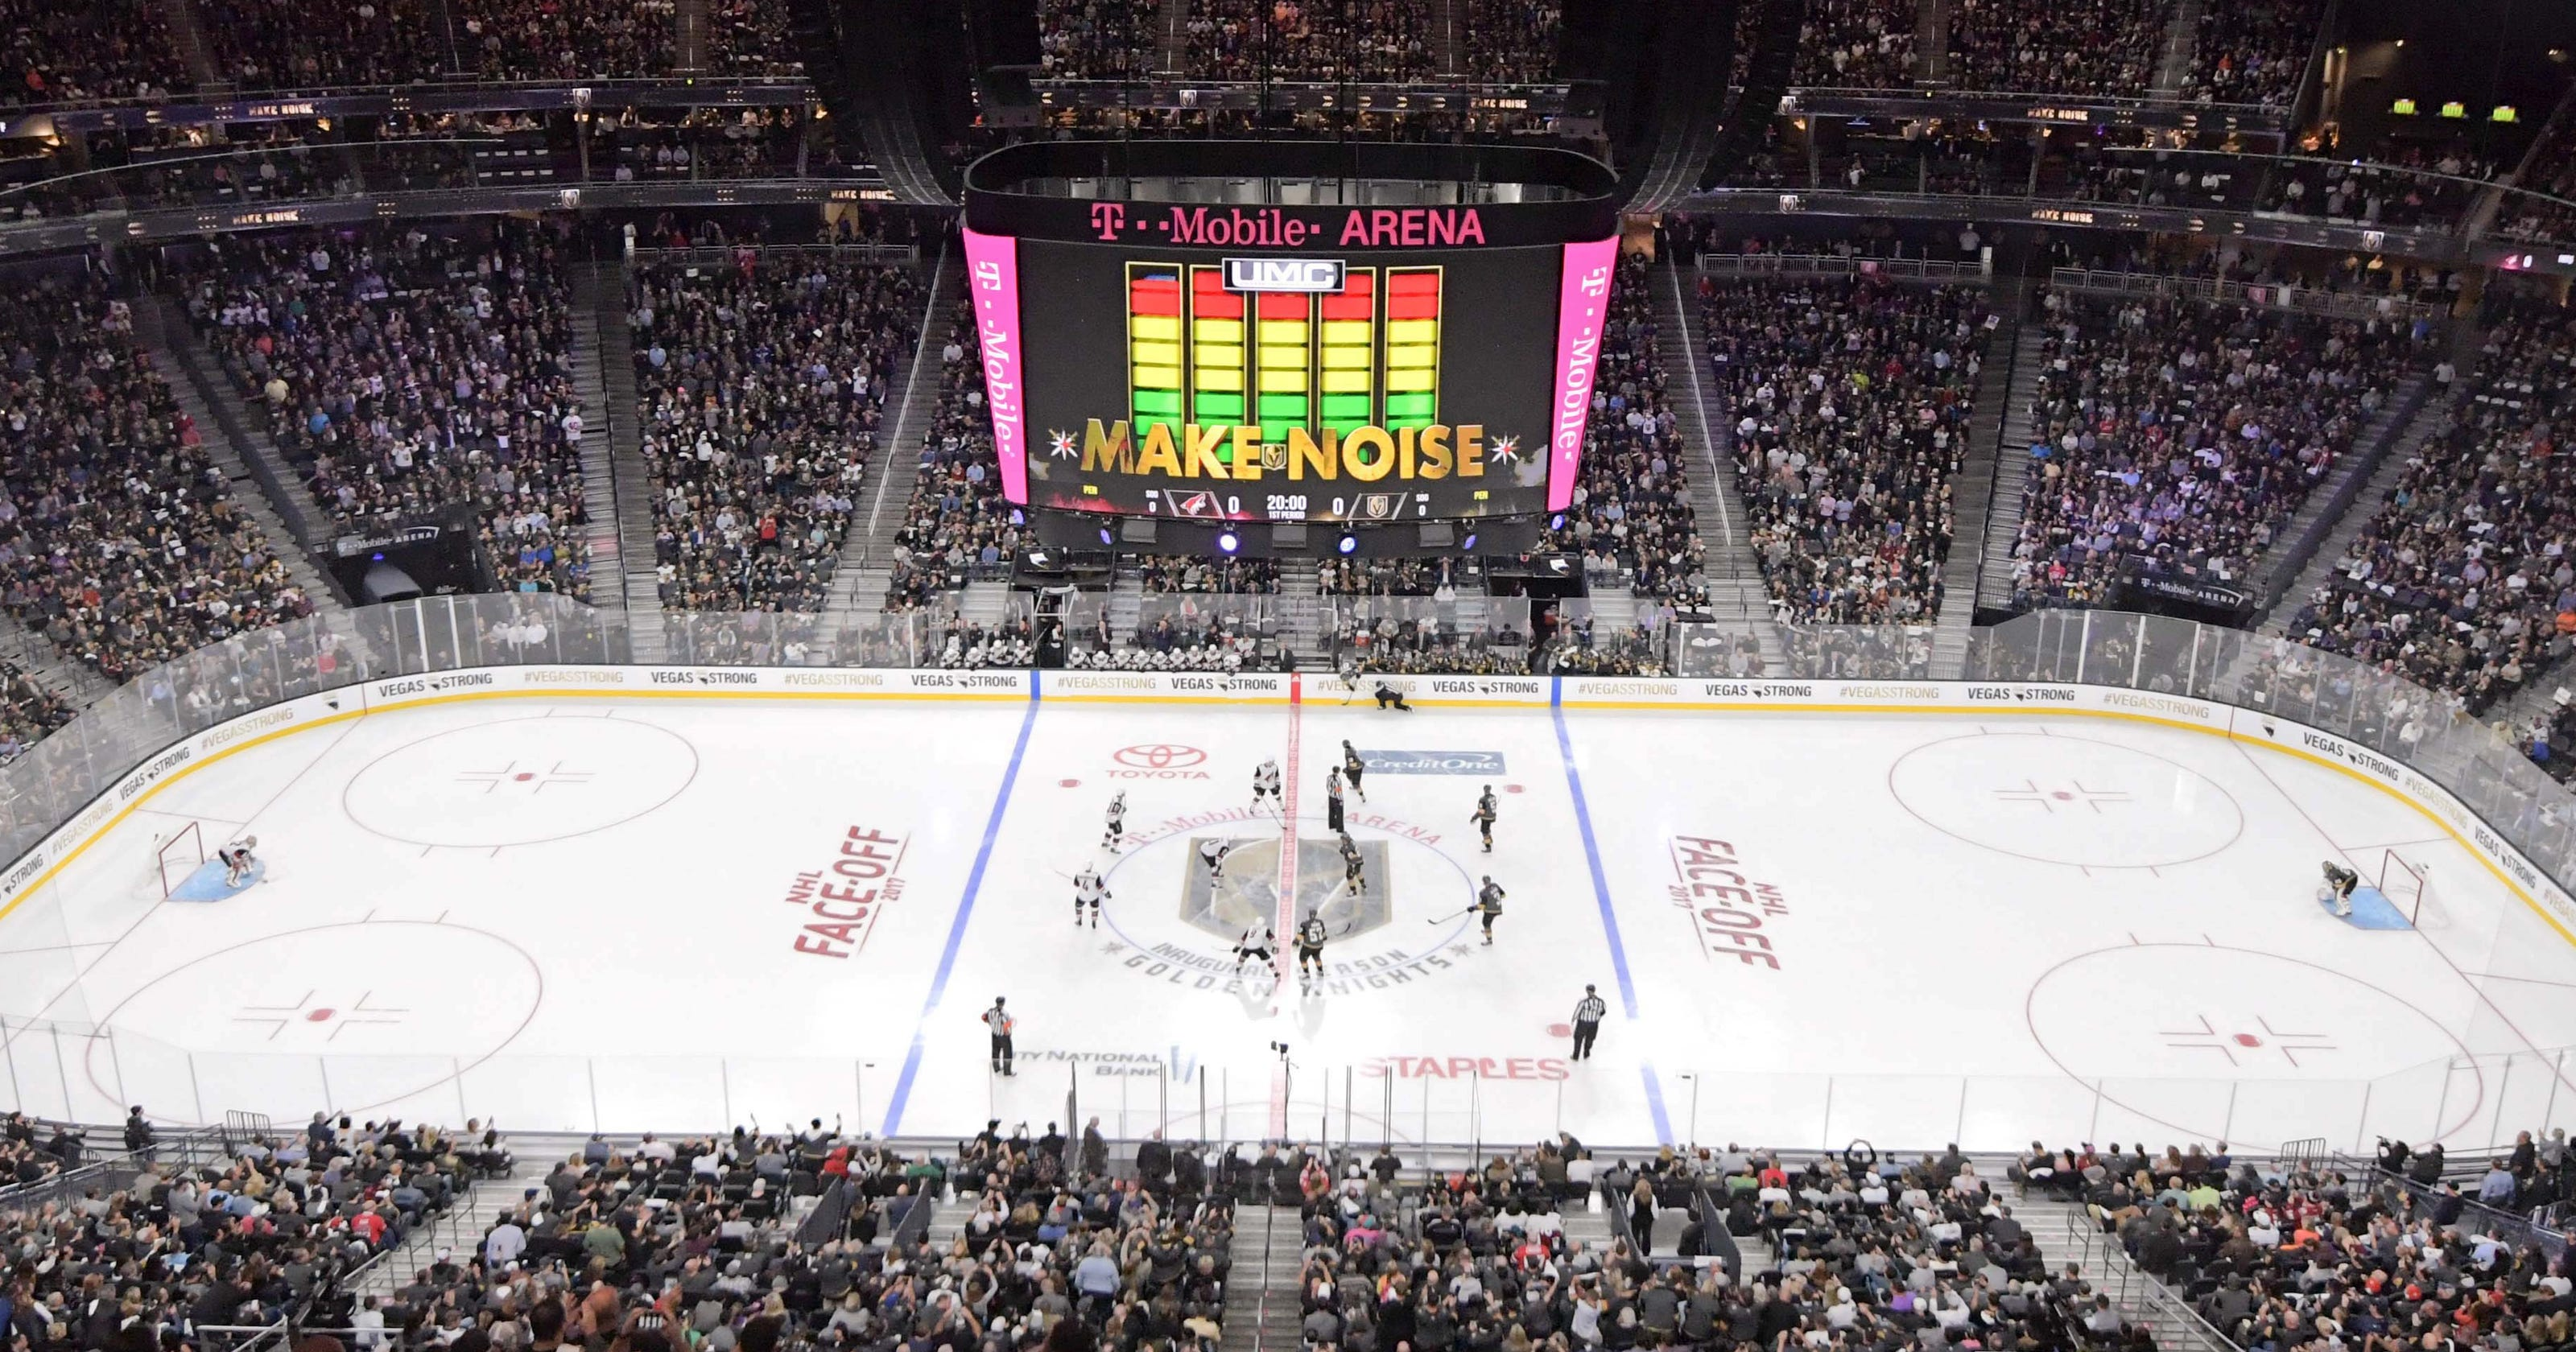 Golden Knights: Nothing funny about their sexist tweets